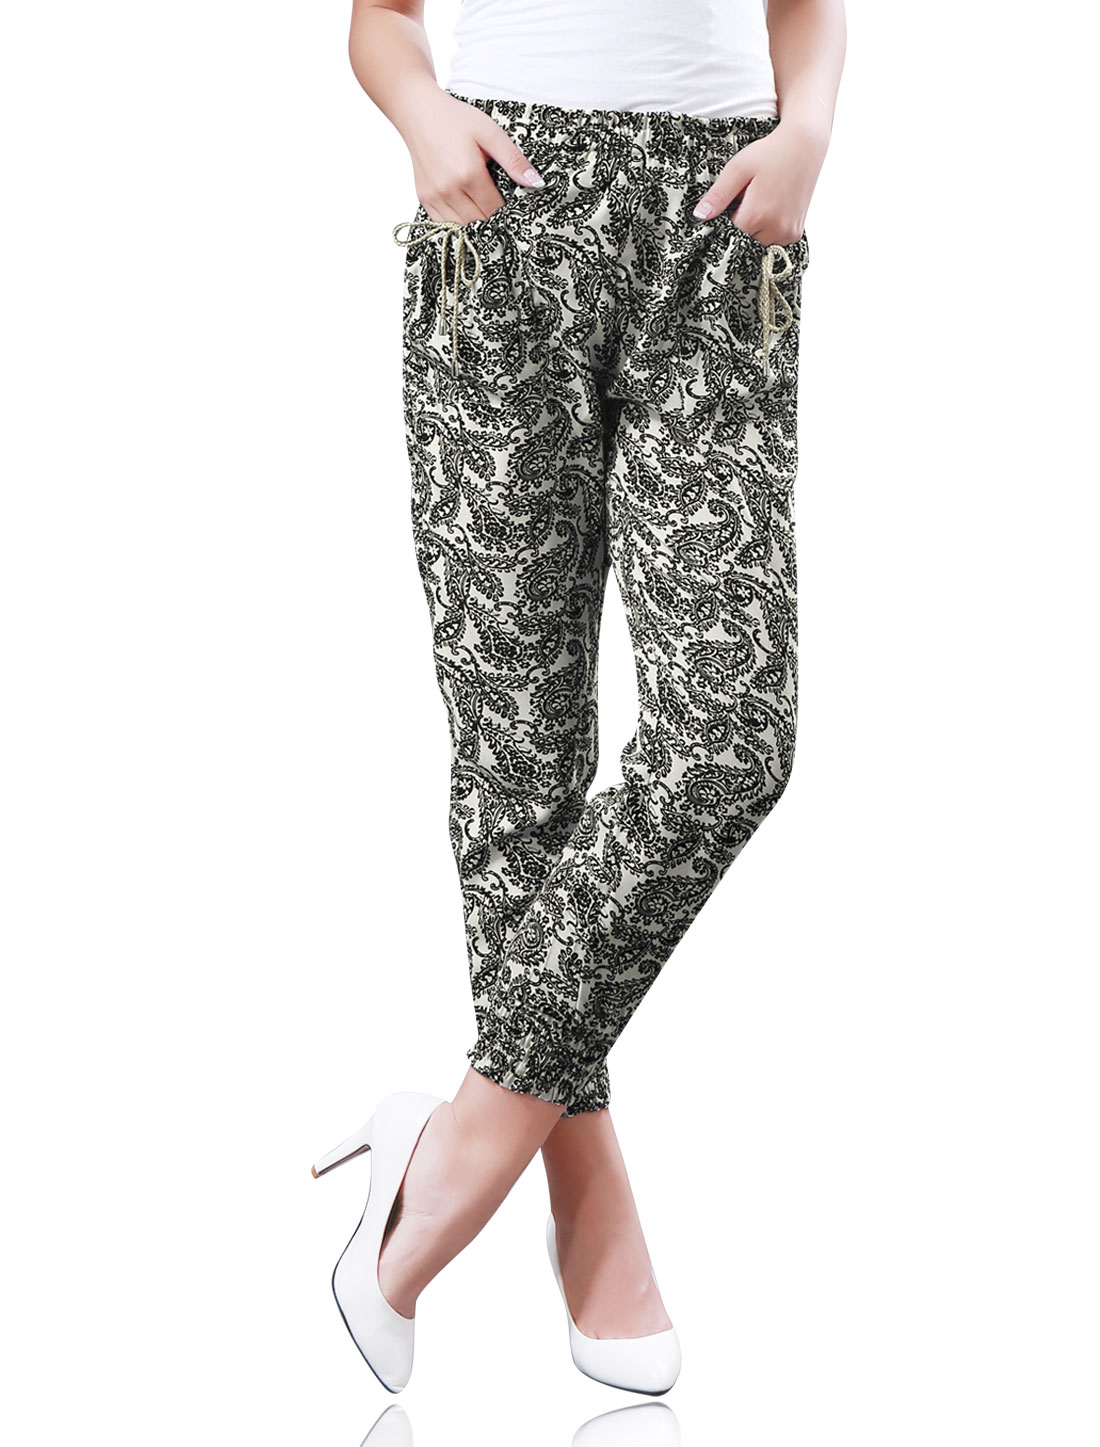 Women All-over Floral Paisleys Print Summer Fit Jogger Pants Black Beige L